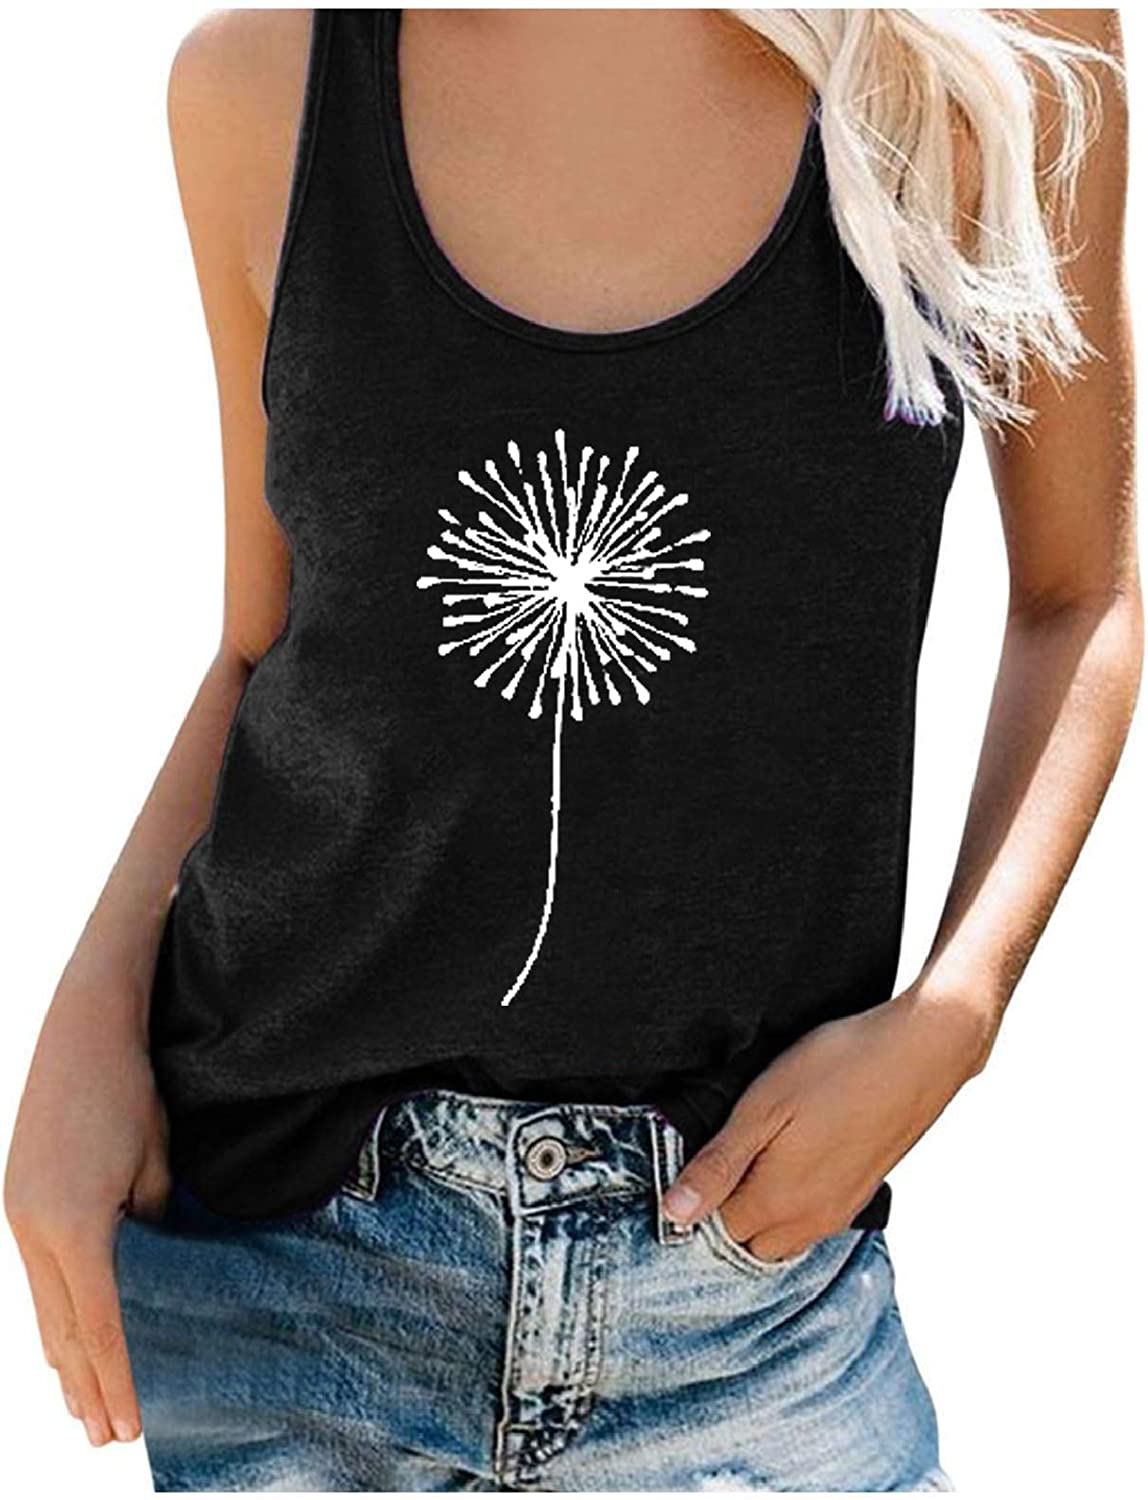 POLLYANNA KEONG Womens Tank Tops Scoop Neck Basic Solid Color Sunflower Graphic Casual Summer Sleeveless Shirts